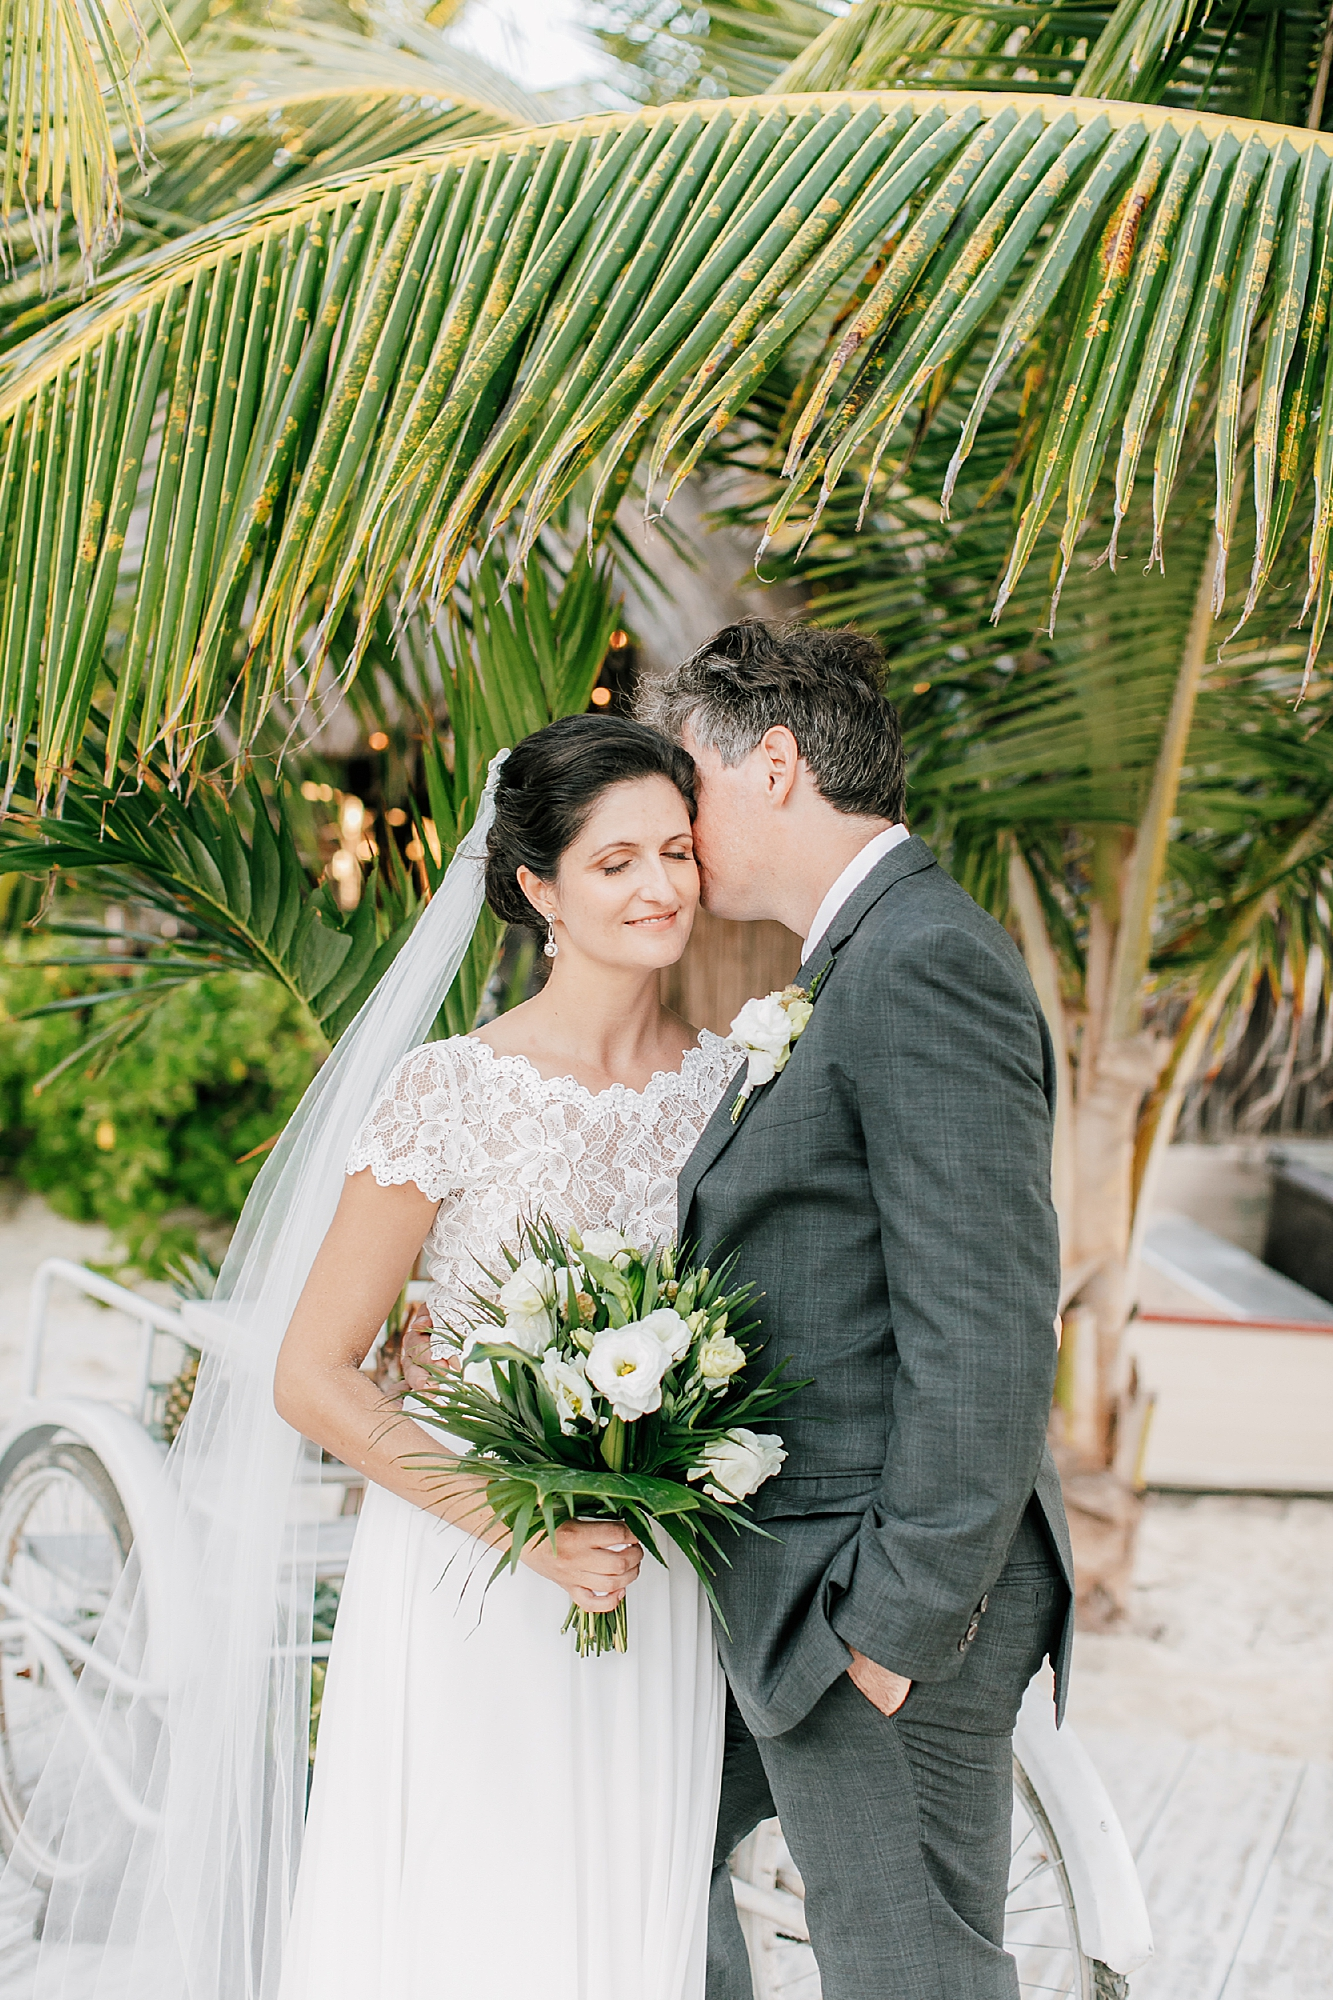 Stylish and Candid Destination Film Wedding Photography in Tulum Mexico by Magdalena Studios 0017